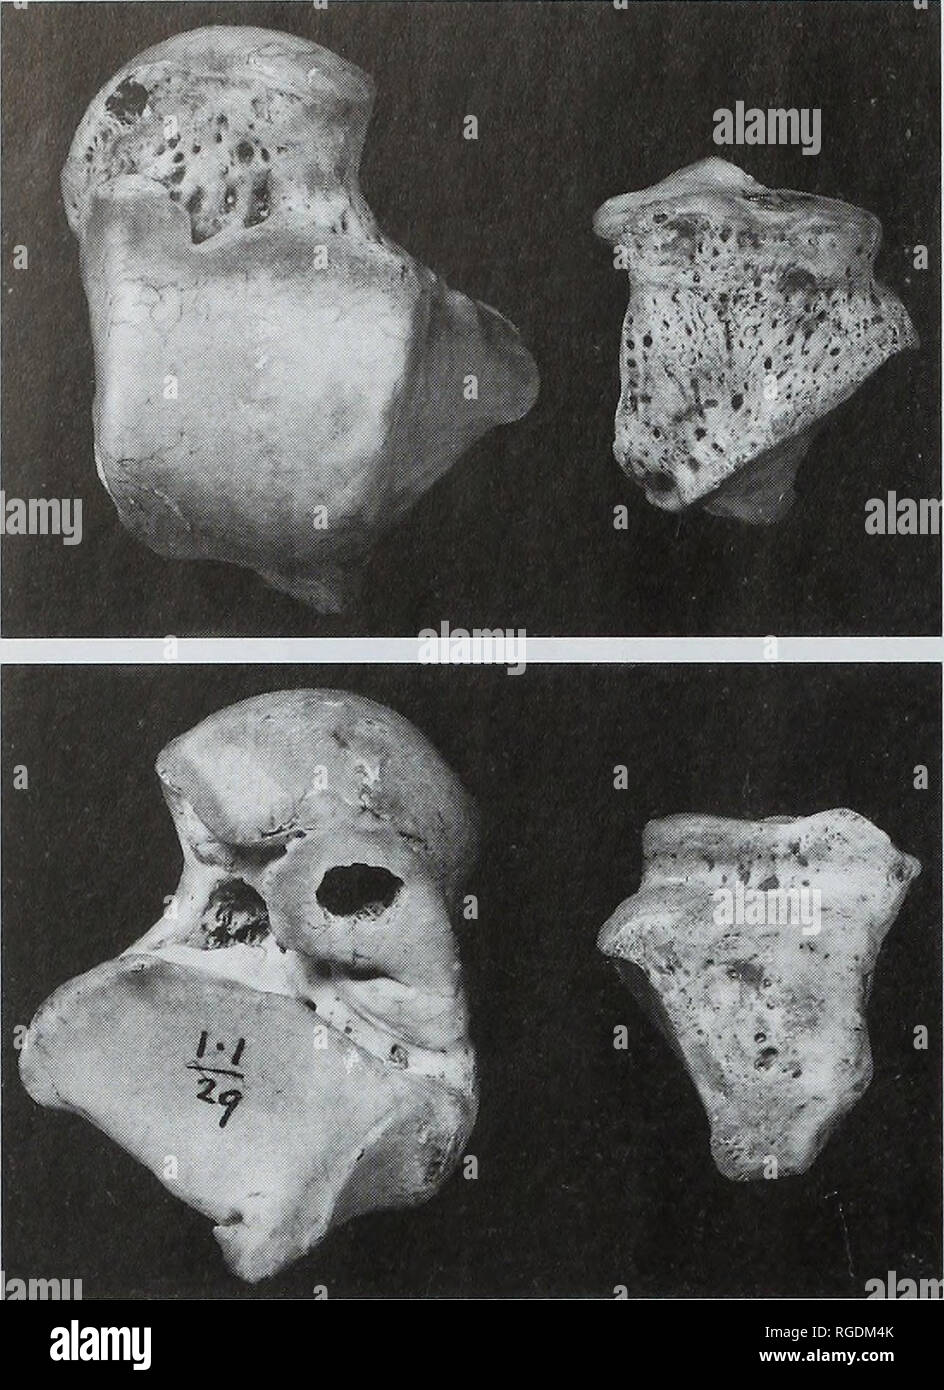 . Bulletin of the Natural Histort Museum. Geology series. 18. Fig. 15 Dorsal (above) and plantar (below) views of the Gough's Cave 1 right talus and cuboid bone; x 0.9. Table 17 Osteometries of the Gough's Cave 1 right talus. 60.5 55.0 26.0 46.7 35.8 28.3 11.4 26.5 28.0 9.0 29.5 20.0 37.2 21.6 35.0 23.5 5° 23° 34° 41° 59° Maximum (lateral) length1 Length (M-l) Articular height (M-3b) Articular breadth (M-2b) Trochlear length (M-4) Trochlear breadth (M-5) Trochlear height (M-6) Lateral malleolar height- Lateral malleolar oblique height (M-7a) Lateral malleolar breadth (M-7) Lateral malleolar le Stock Photo